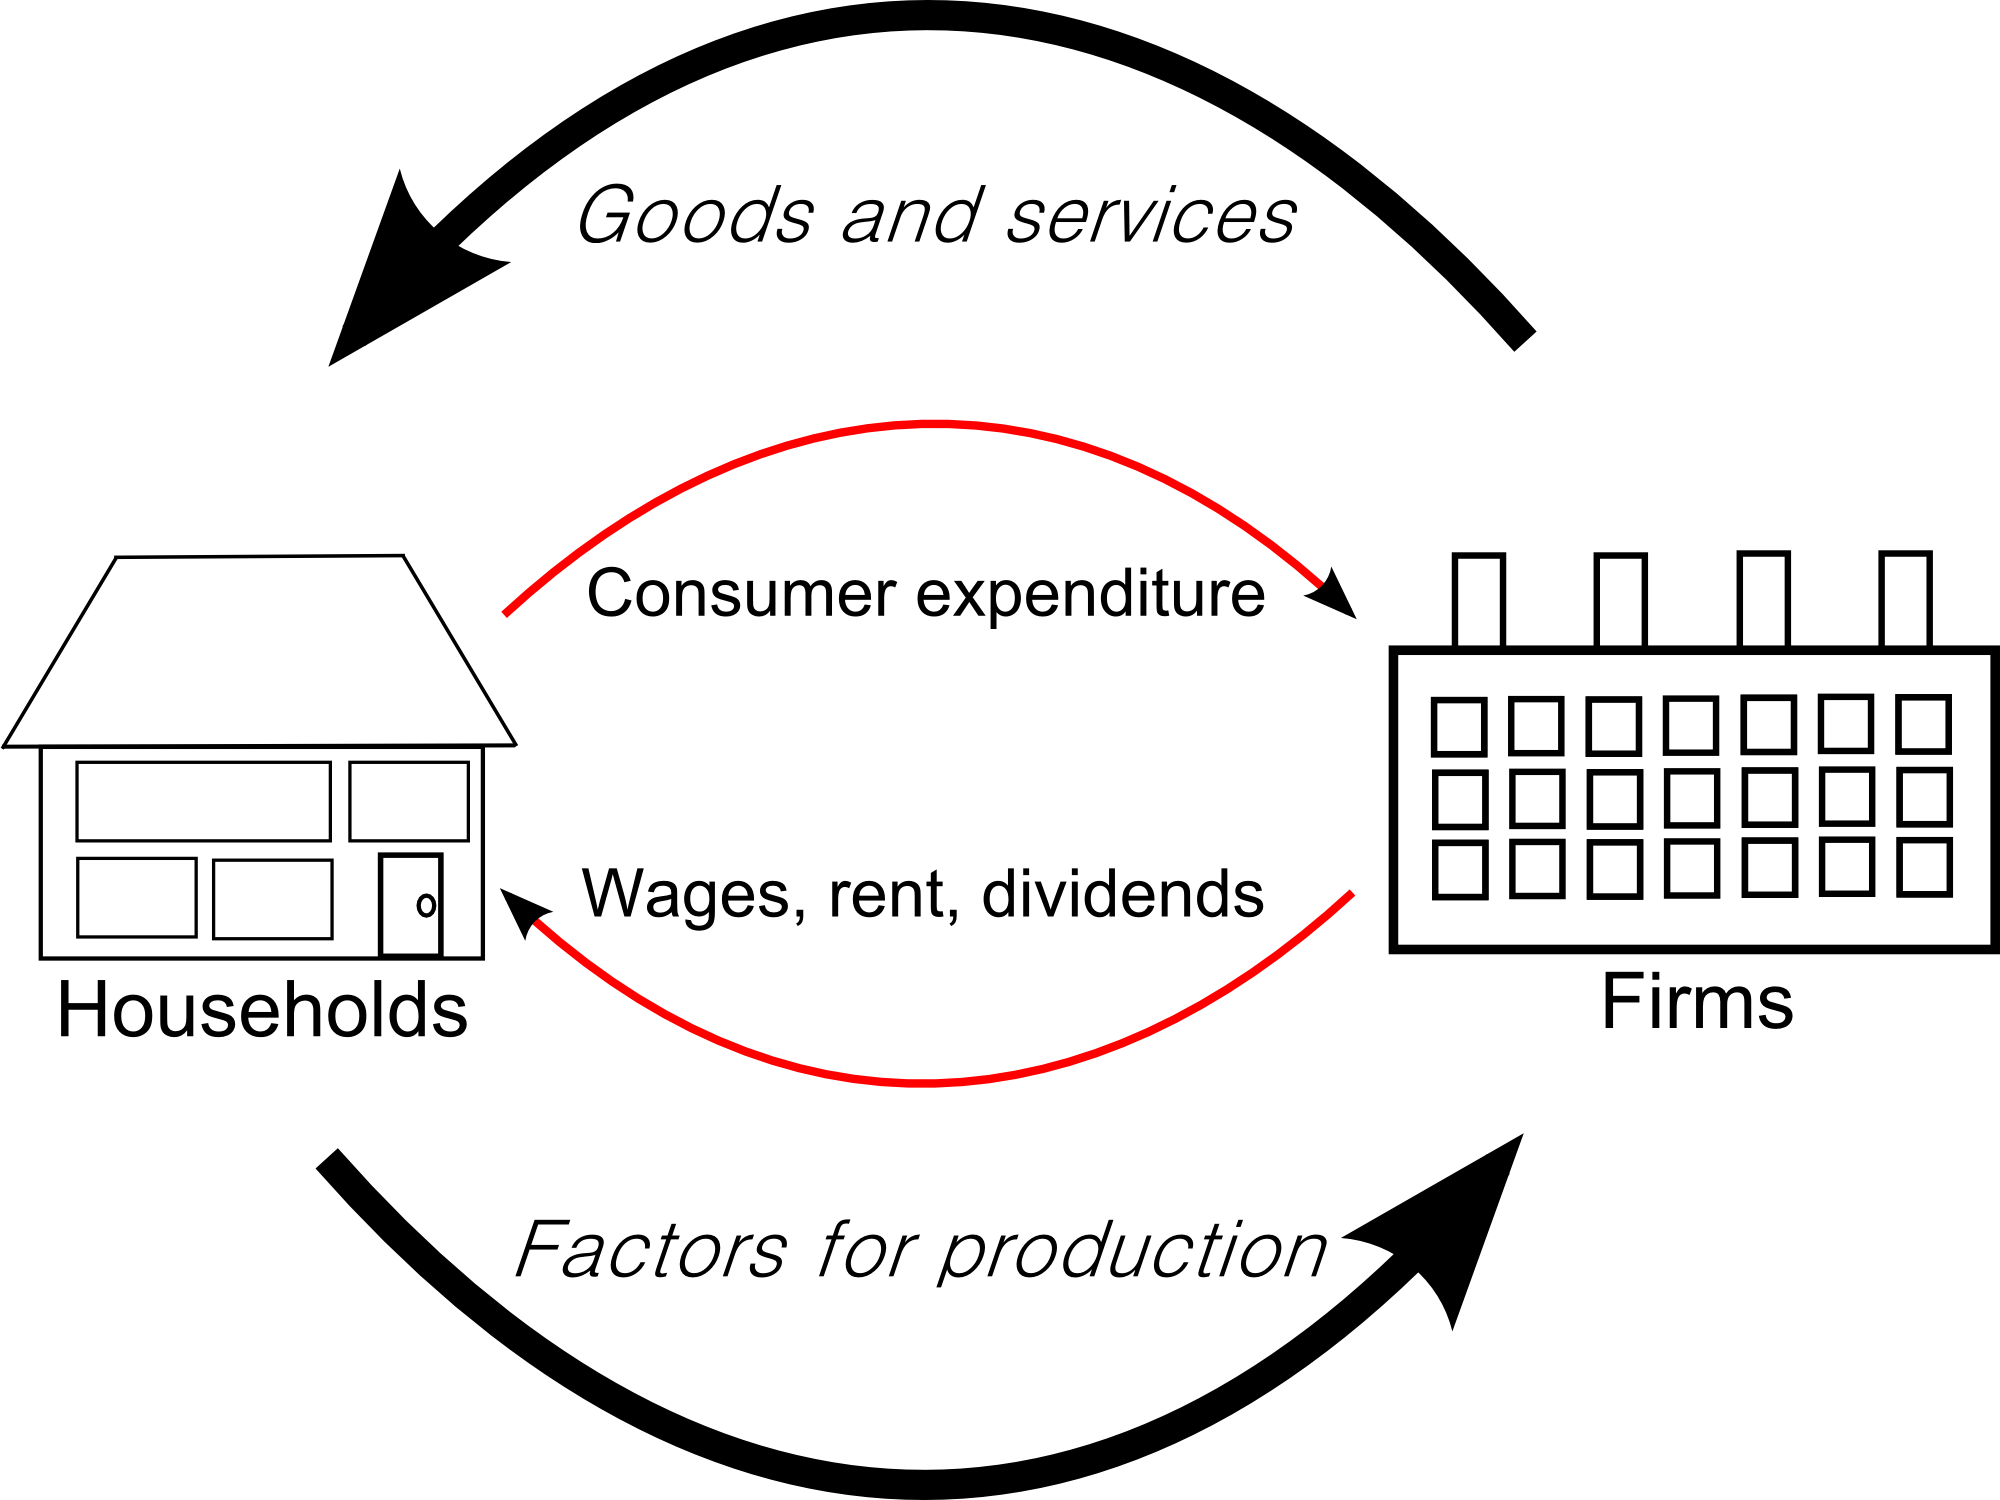 What Are The Main Features Of The Five Sector Circular